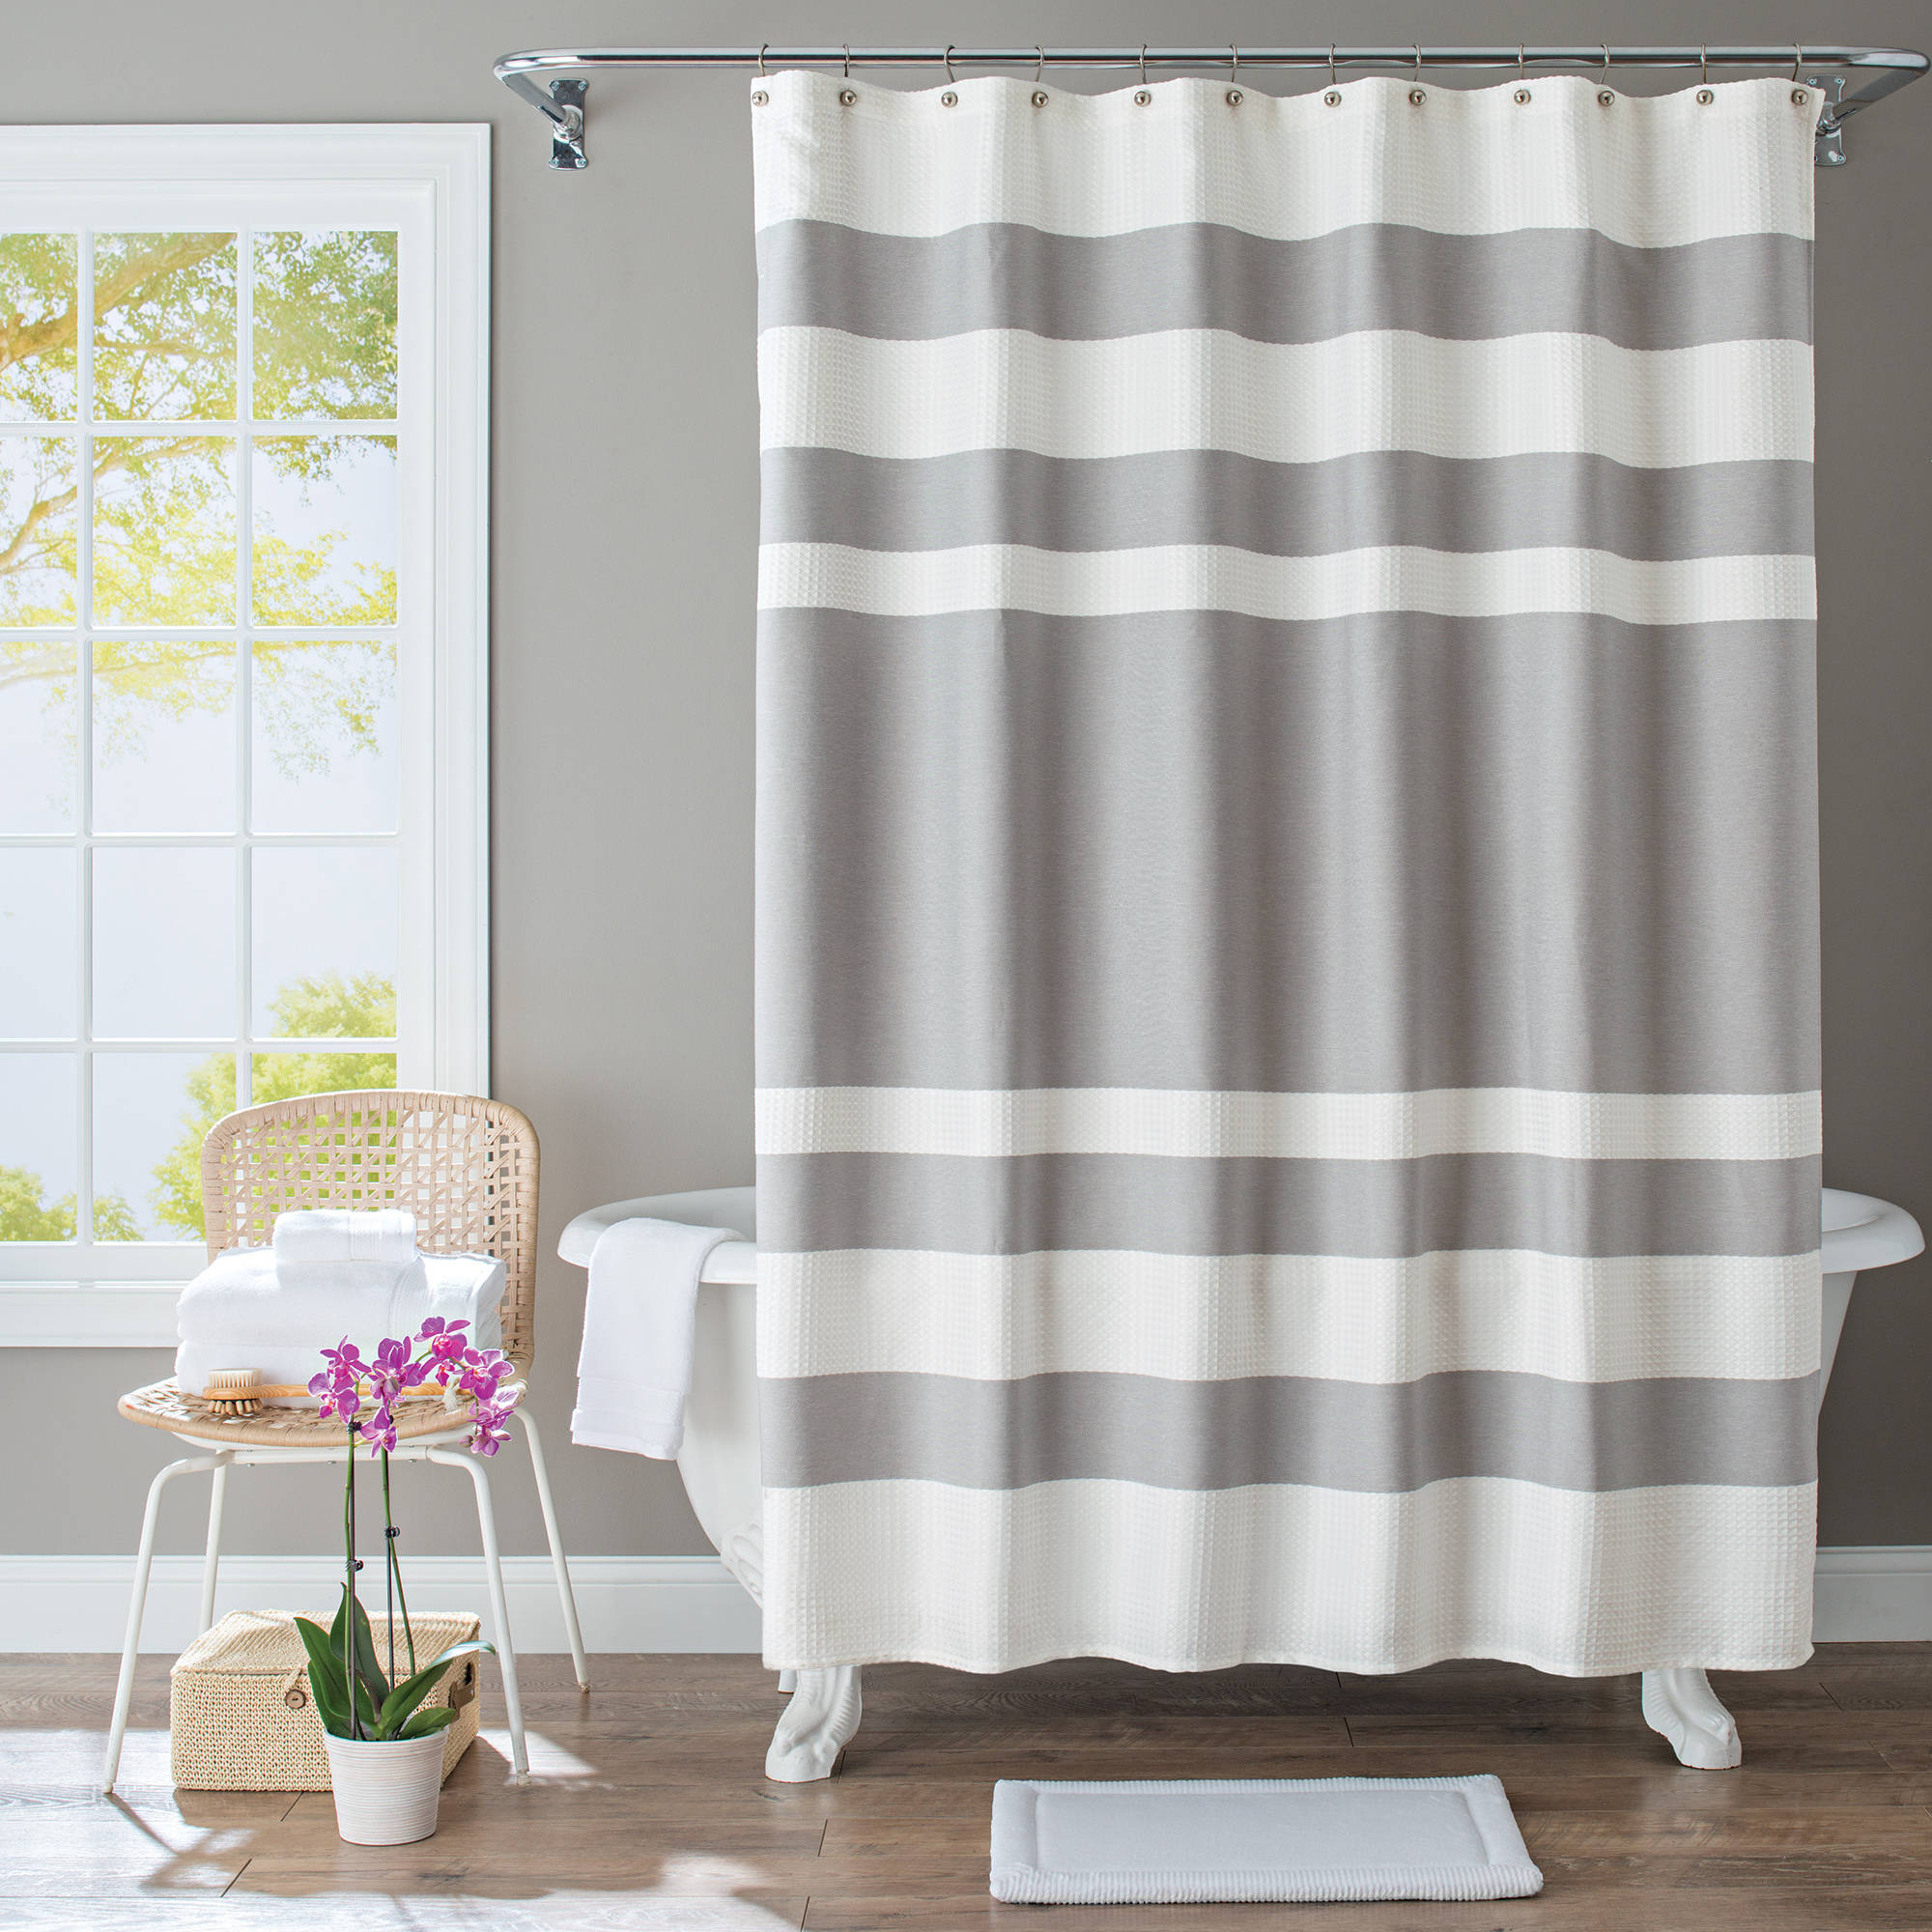 blush the hotel waffle curtain hcowscblu weave collection curtains p in shower